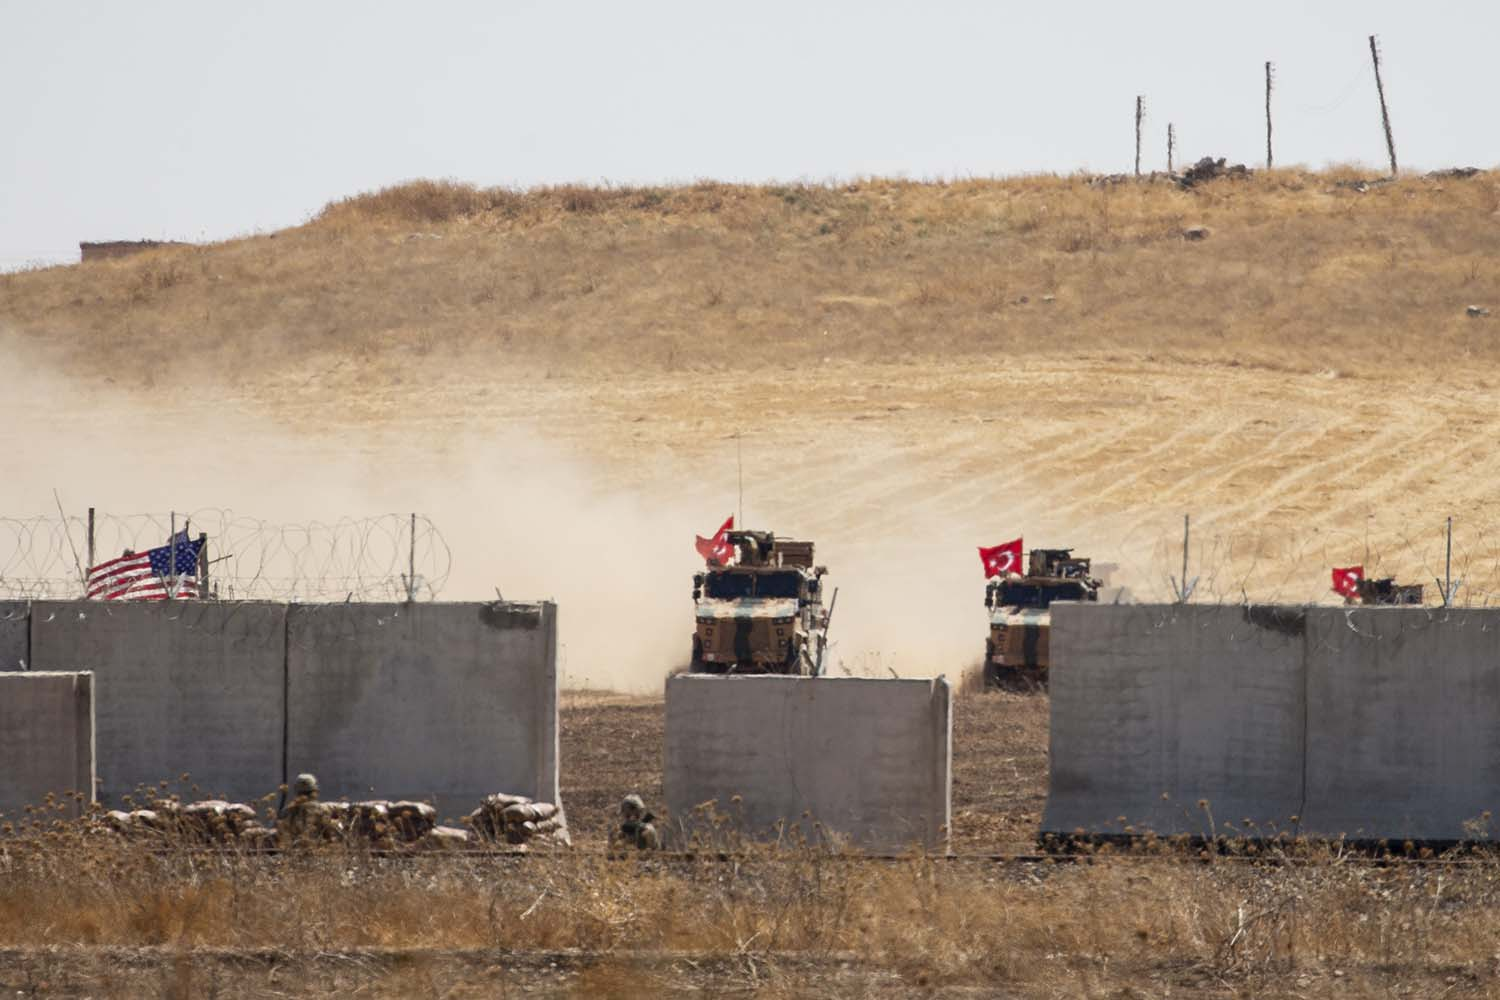 Armored vehicles from Turkey and the United States start their first joint ground patrols as part of efforts to establish a safe zone in Syria as seen from Turkey's Sanliurfa province on Sept. 8.